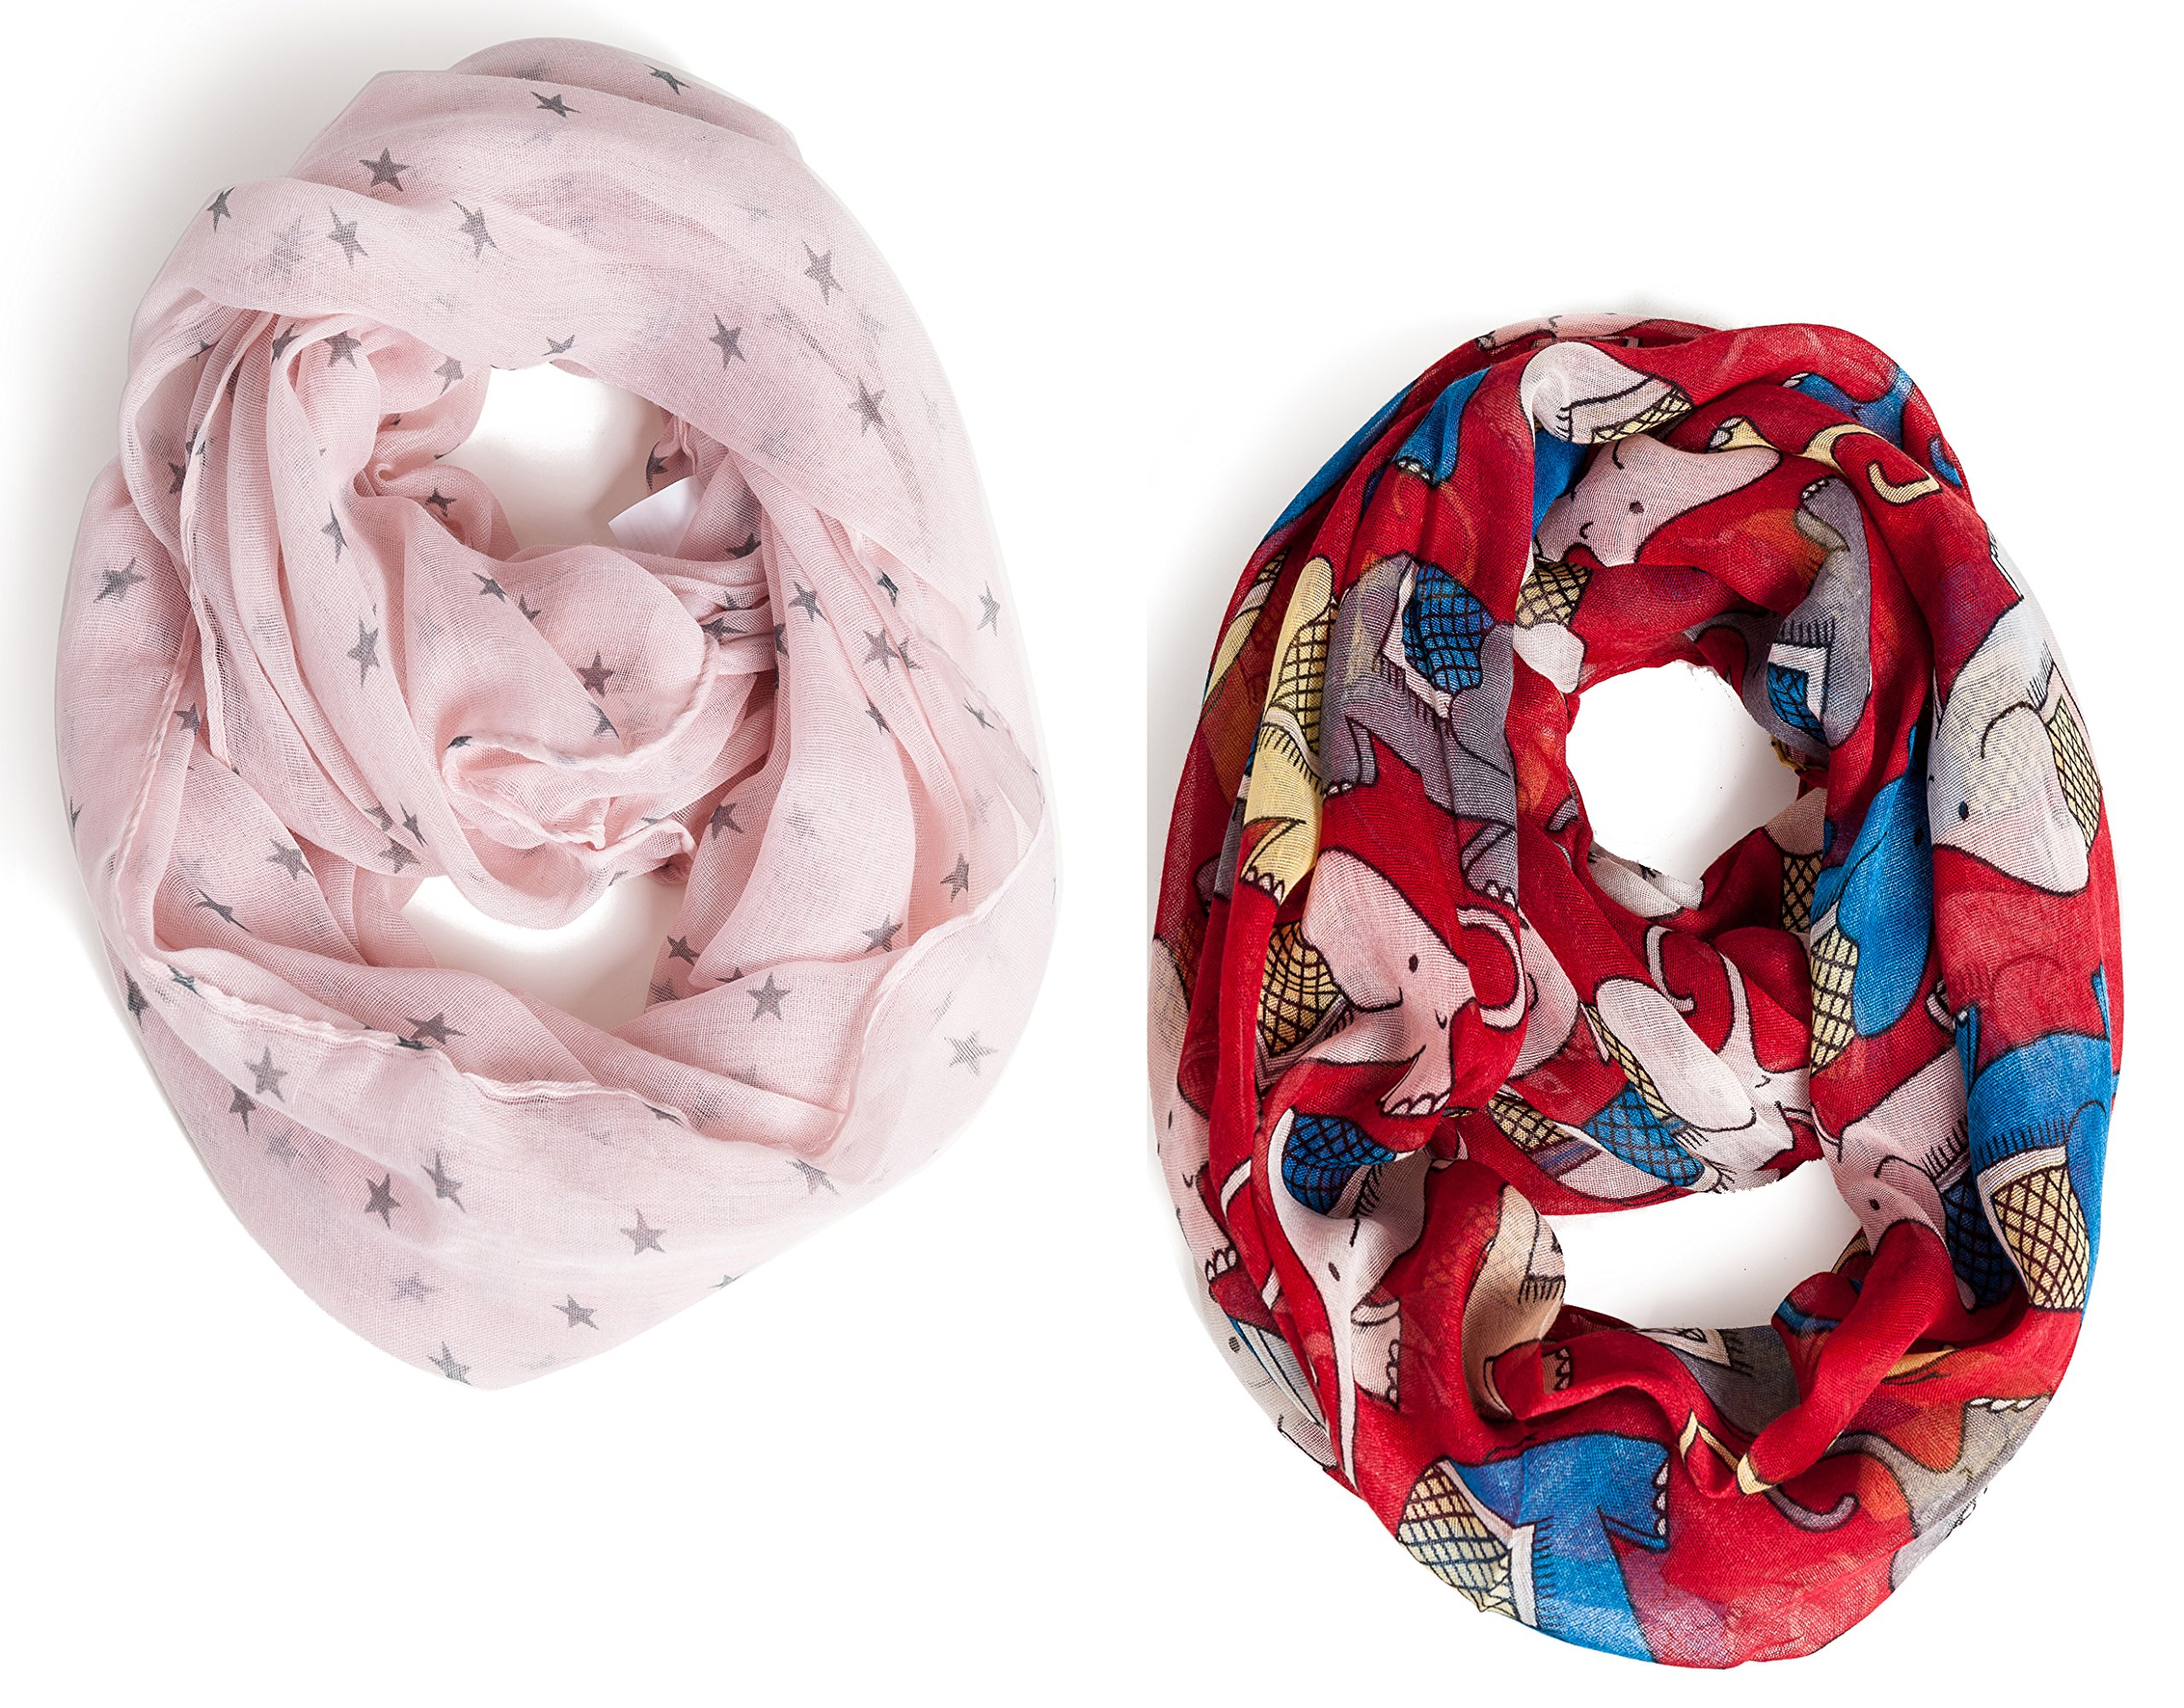 Kids Infinity Scarf Lightweight Toddler Girls Loop Scarves for Women Boys by A Sund (pair3)